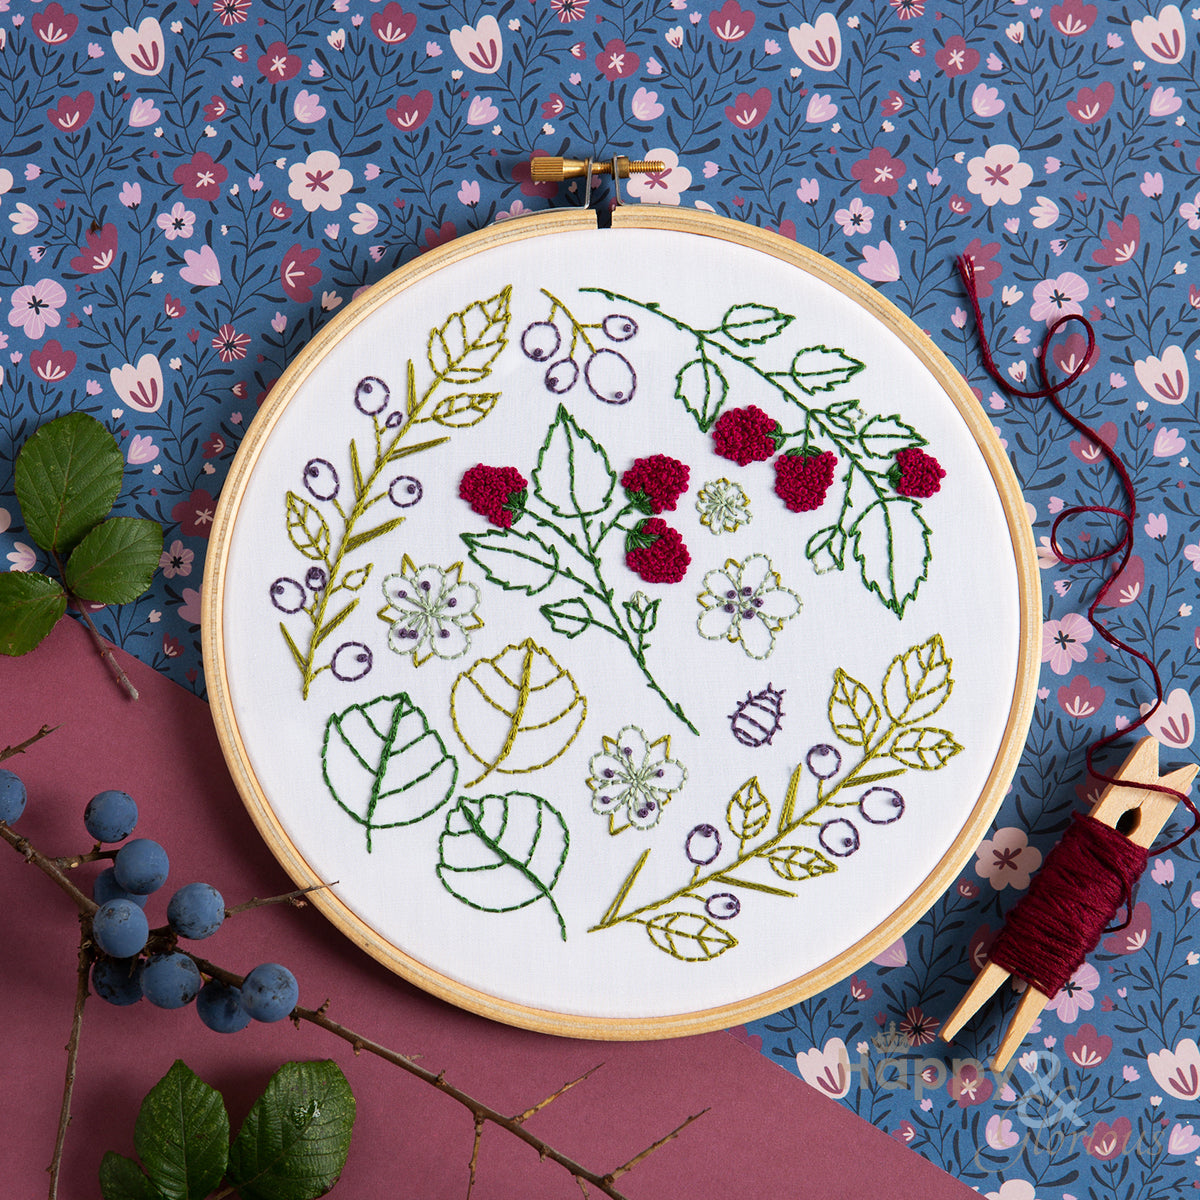 Blackthorn Bramble contemporary embroidery craft kit